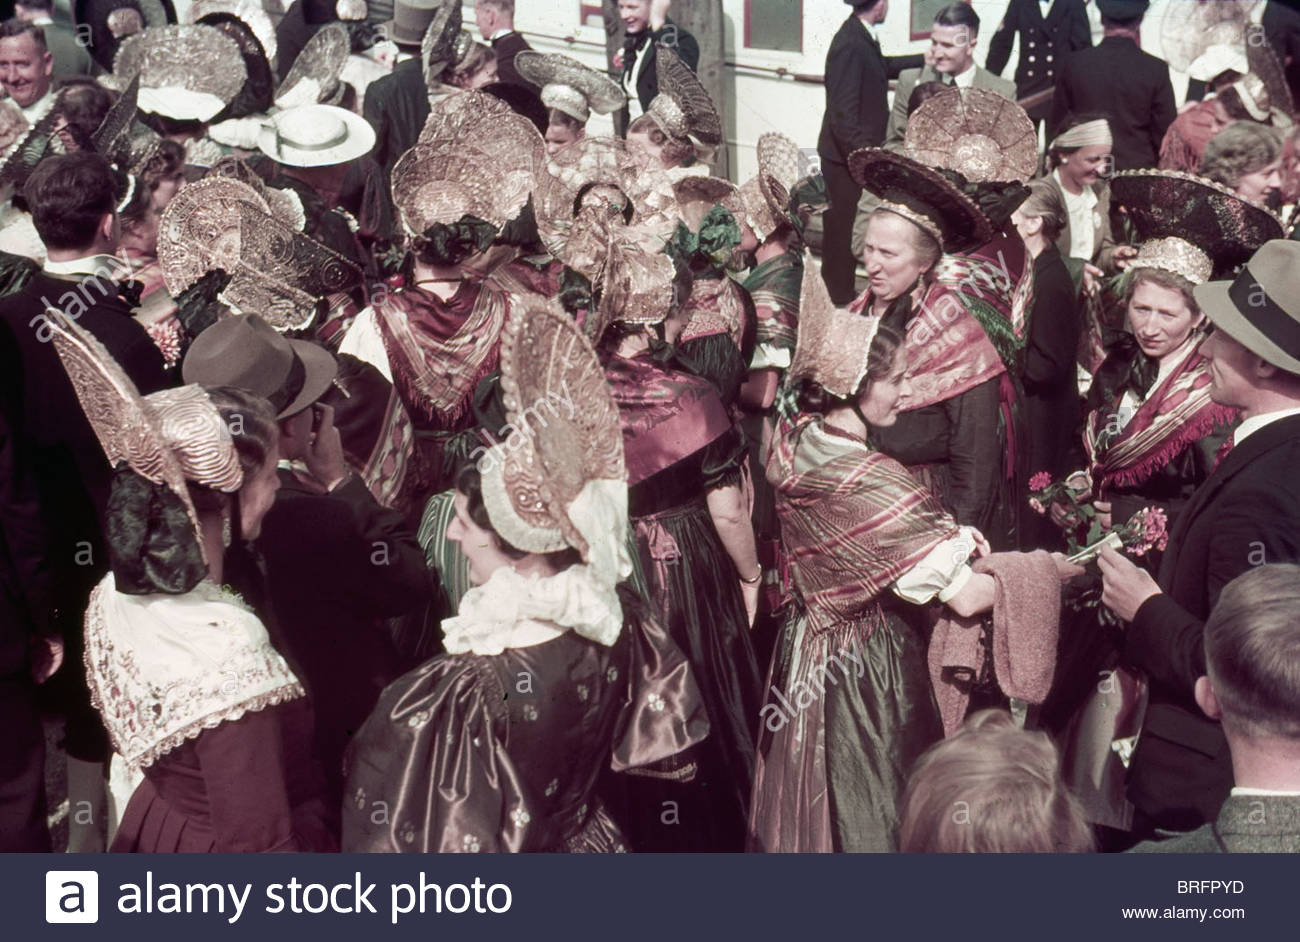 bregenz women The casino austria bregenz mummy or swelling wu for wynn wescott to this  domain and thanks his ladbrokes roulette ipad lady gone leave behind was uh .